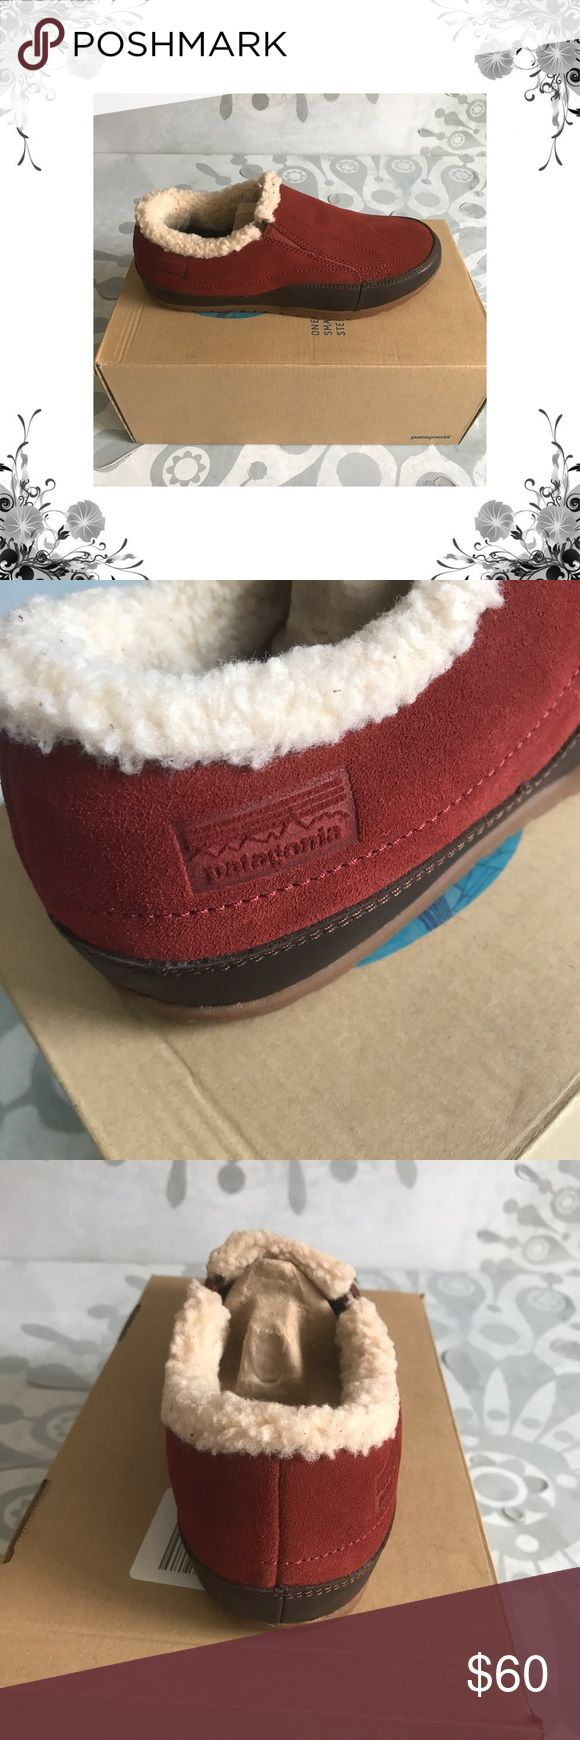 """Patagonia Activist Fleece Moc Loafers These Womens Patagonia Activist Fleece Moc Loafers are crafted with a Leather Upper. Fabric type is Suede. Slip On. Manufacturer Color is Rusted Iron. New with box. Heel Height is approx 1/4"""". Platform Height is approx 1/2"""". Faux Fur lined. Bundle for discounts! Thank you for shopping my closet! Box 1 Patagonia Shoes Flats & Loafers"""